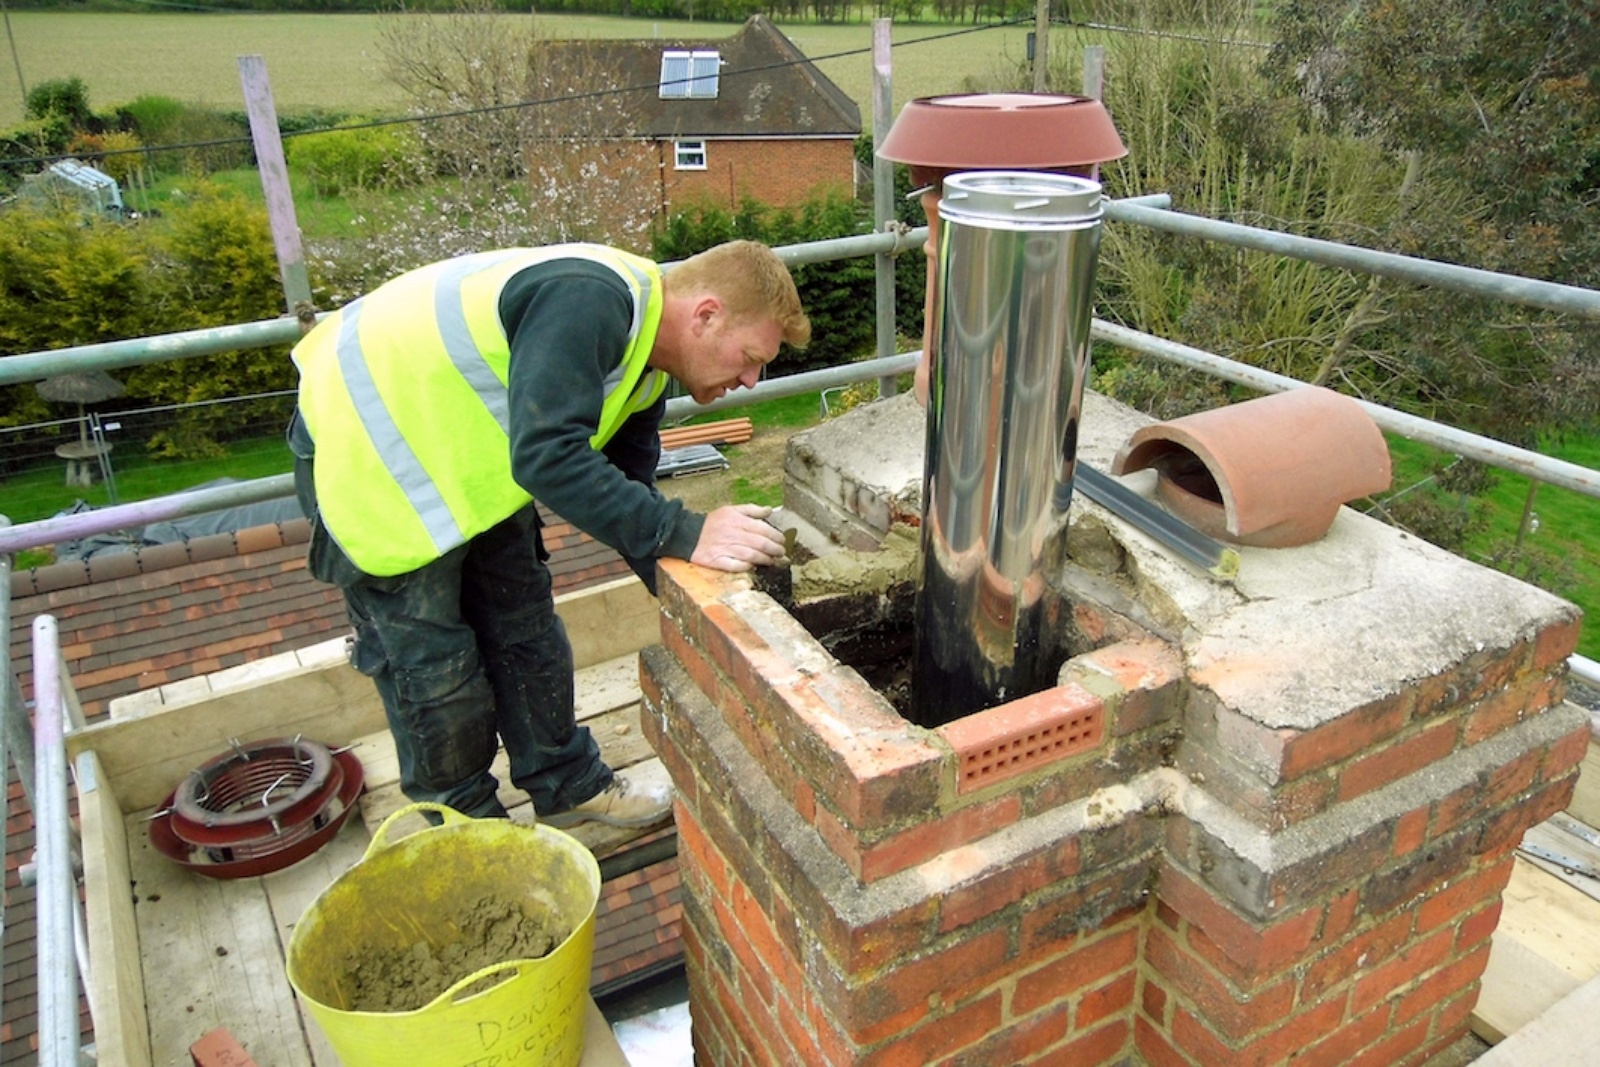 Our HETAS engineer raises the height of the chimney stack in a thatched cottage by adding additional brick courses. This ensures any flying embers cool before they land.